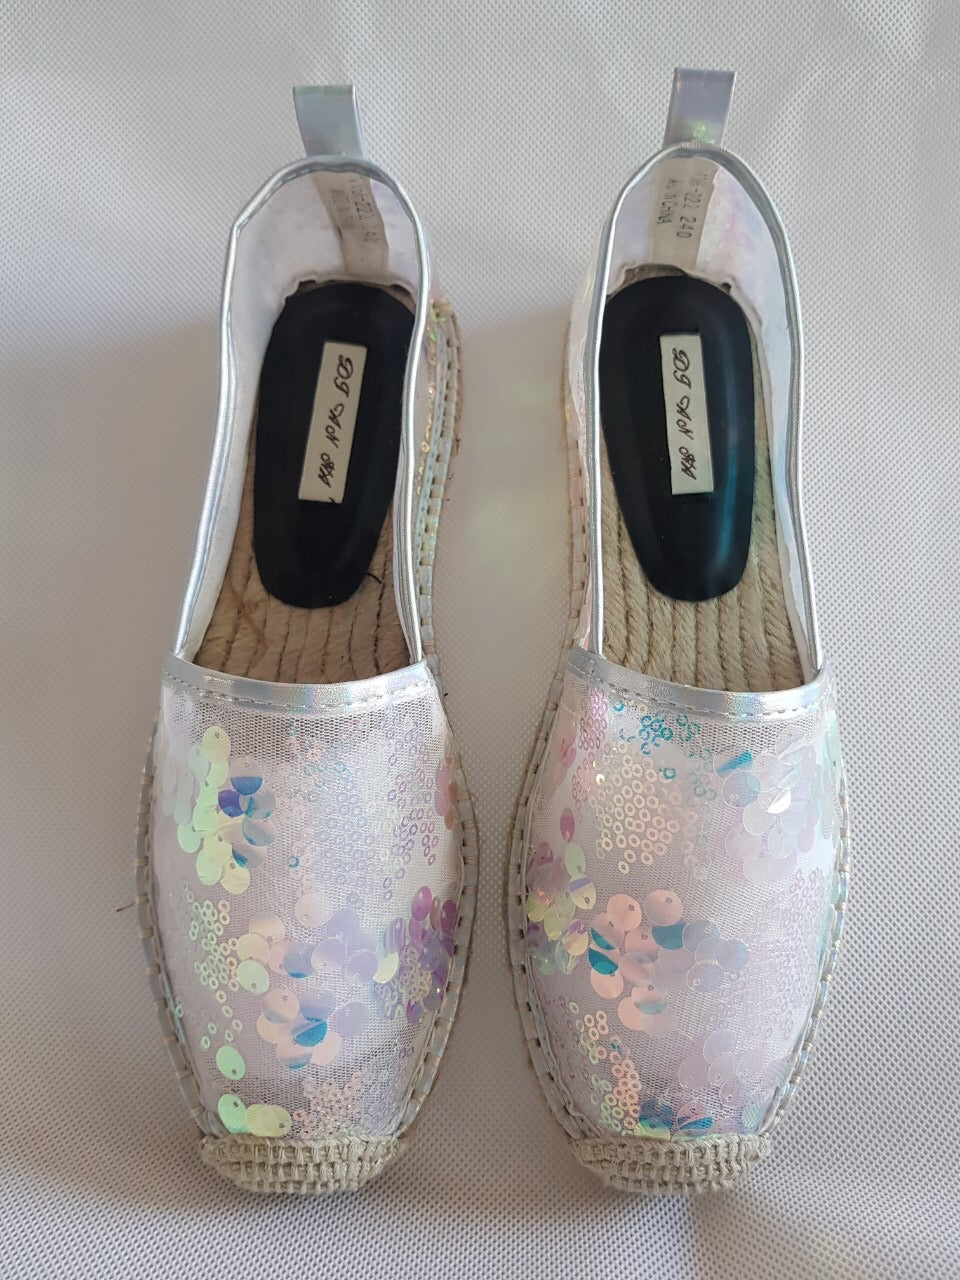 GW-White pearl sequins espadrilles **recommend sizing down one full size**